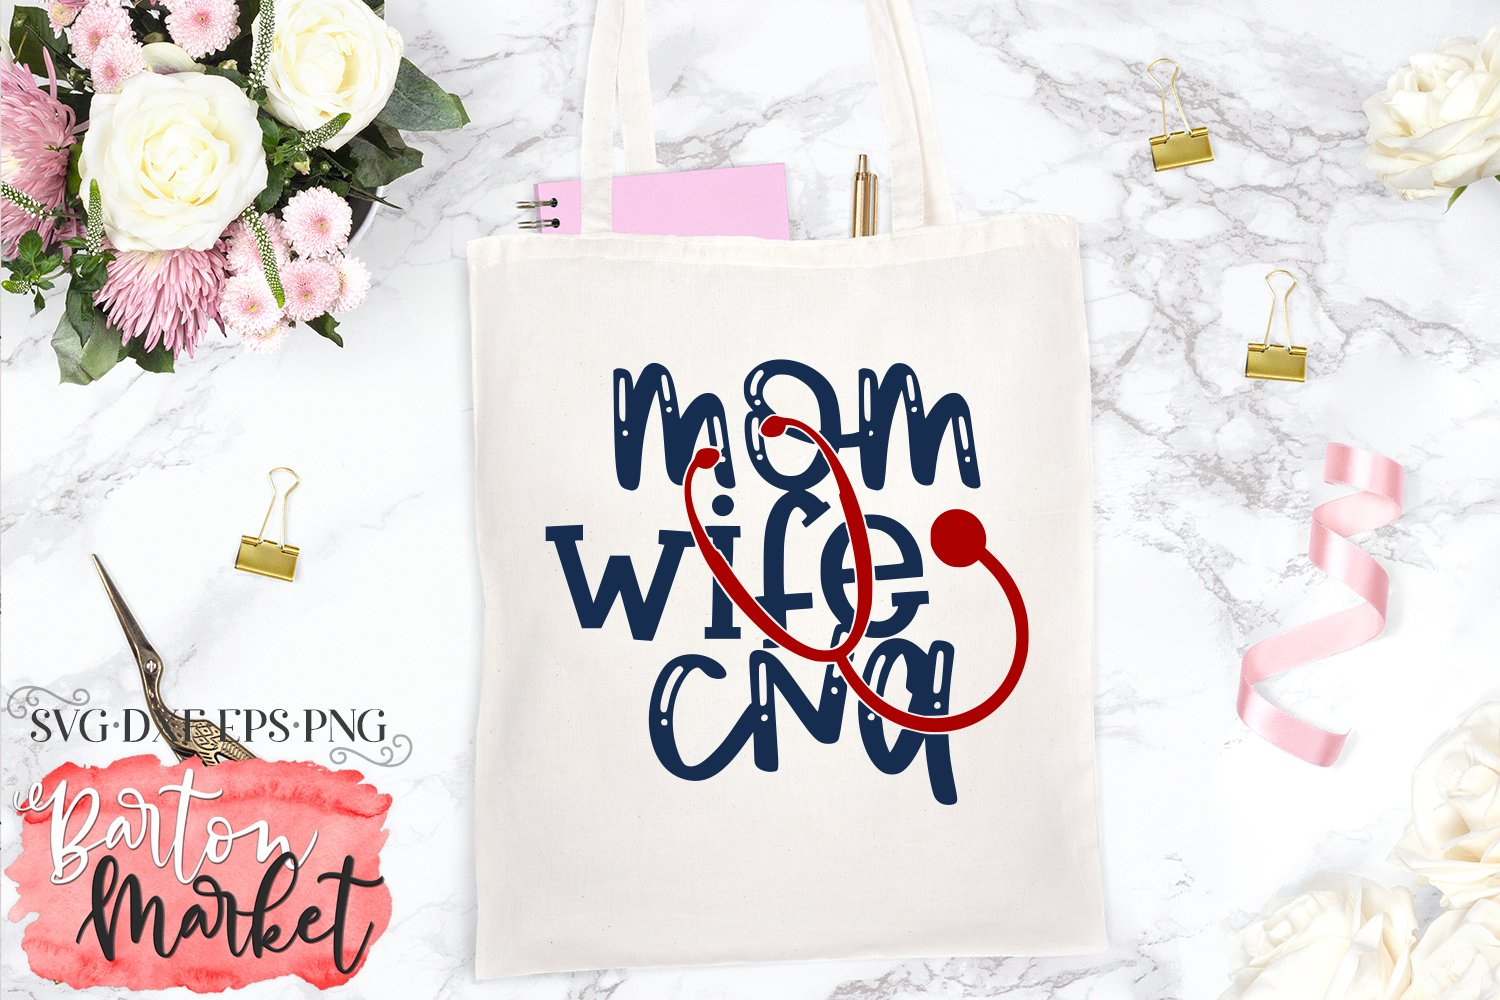 Mom Wife CNA SVG DXF EPS PNG example image 1